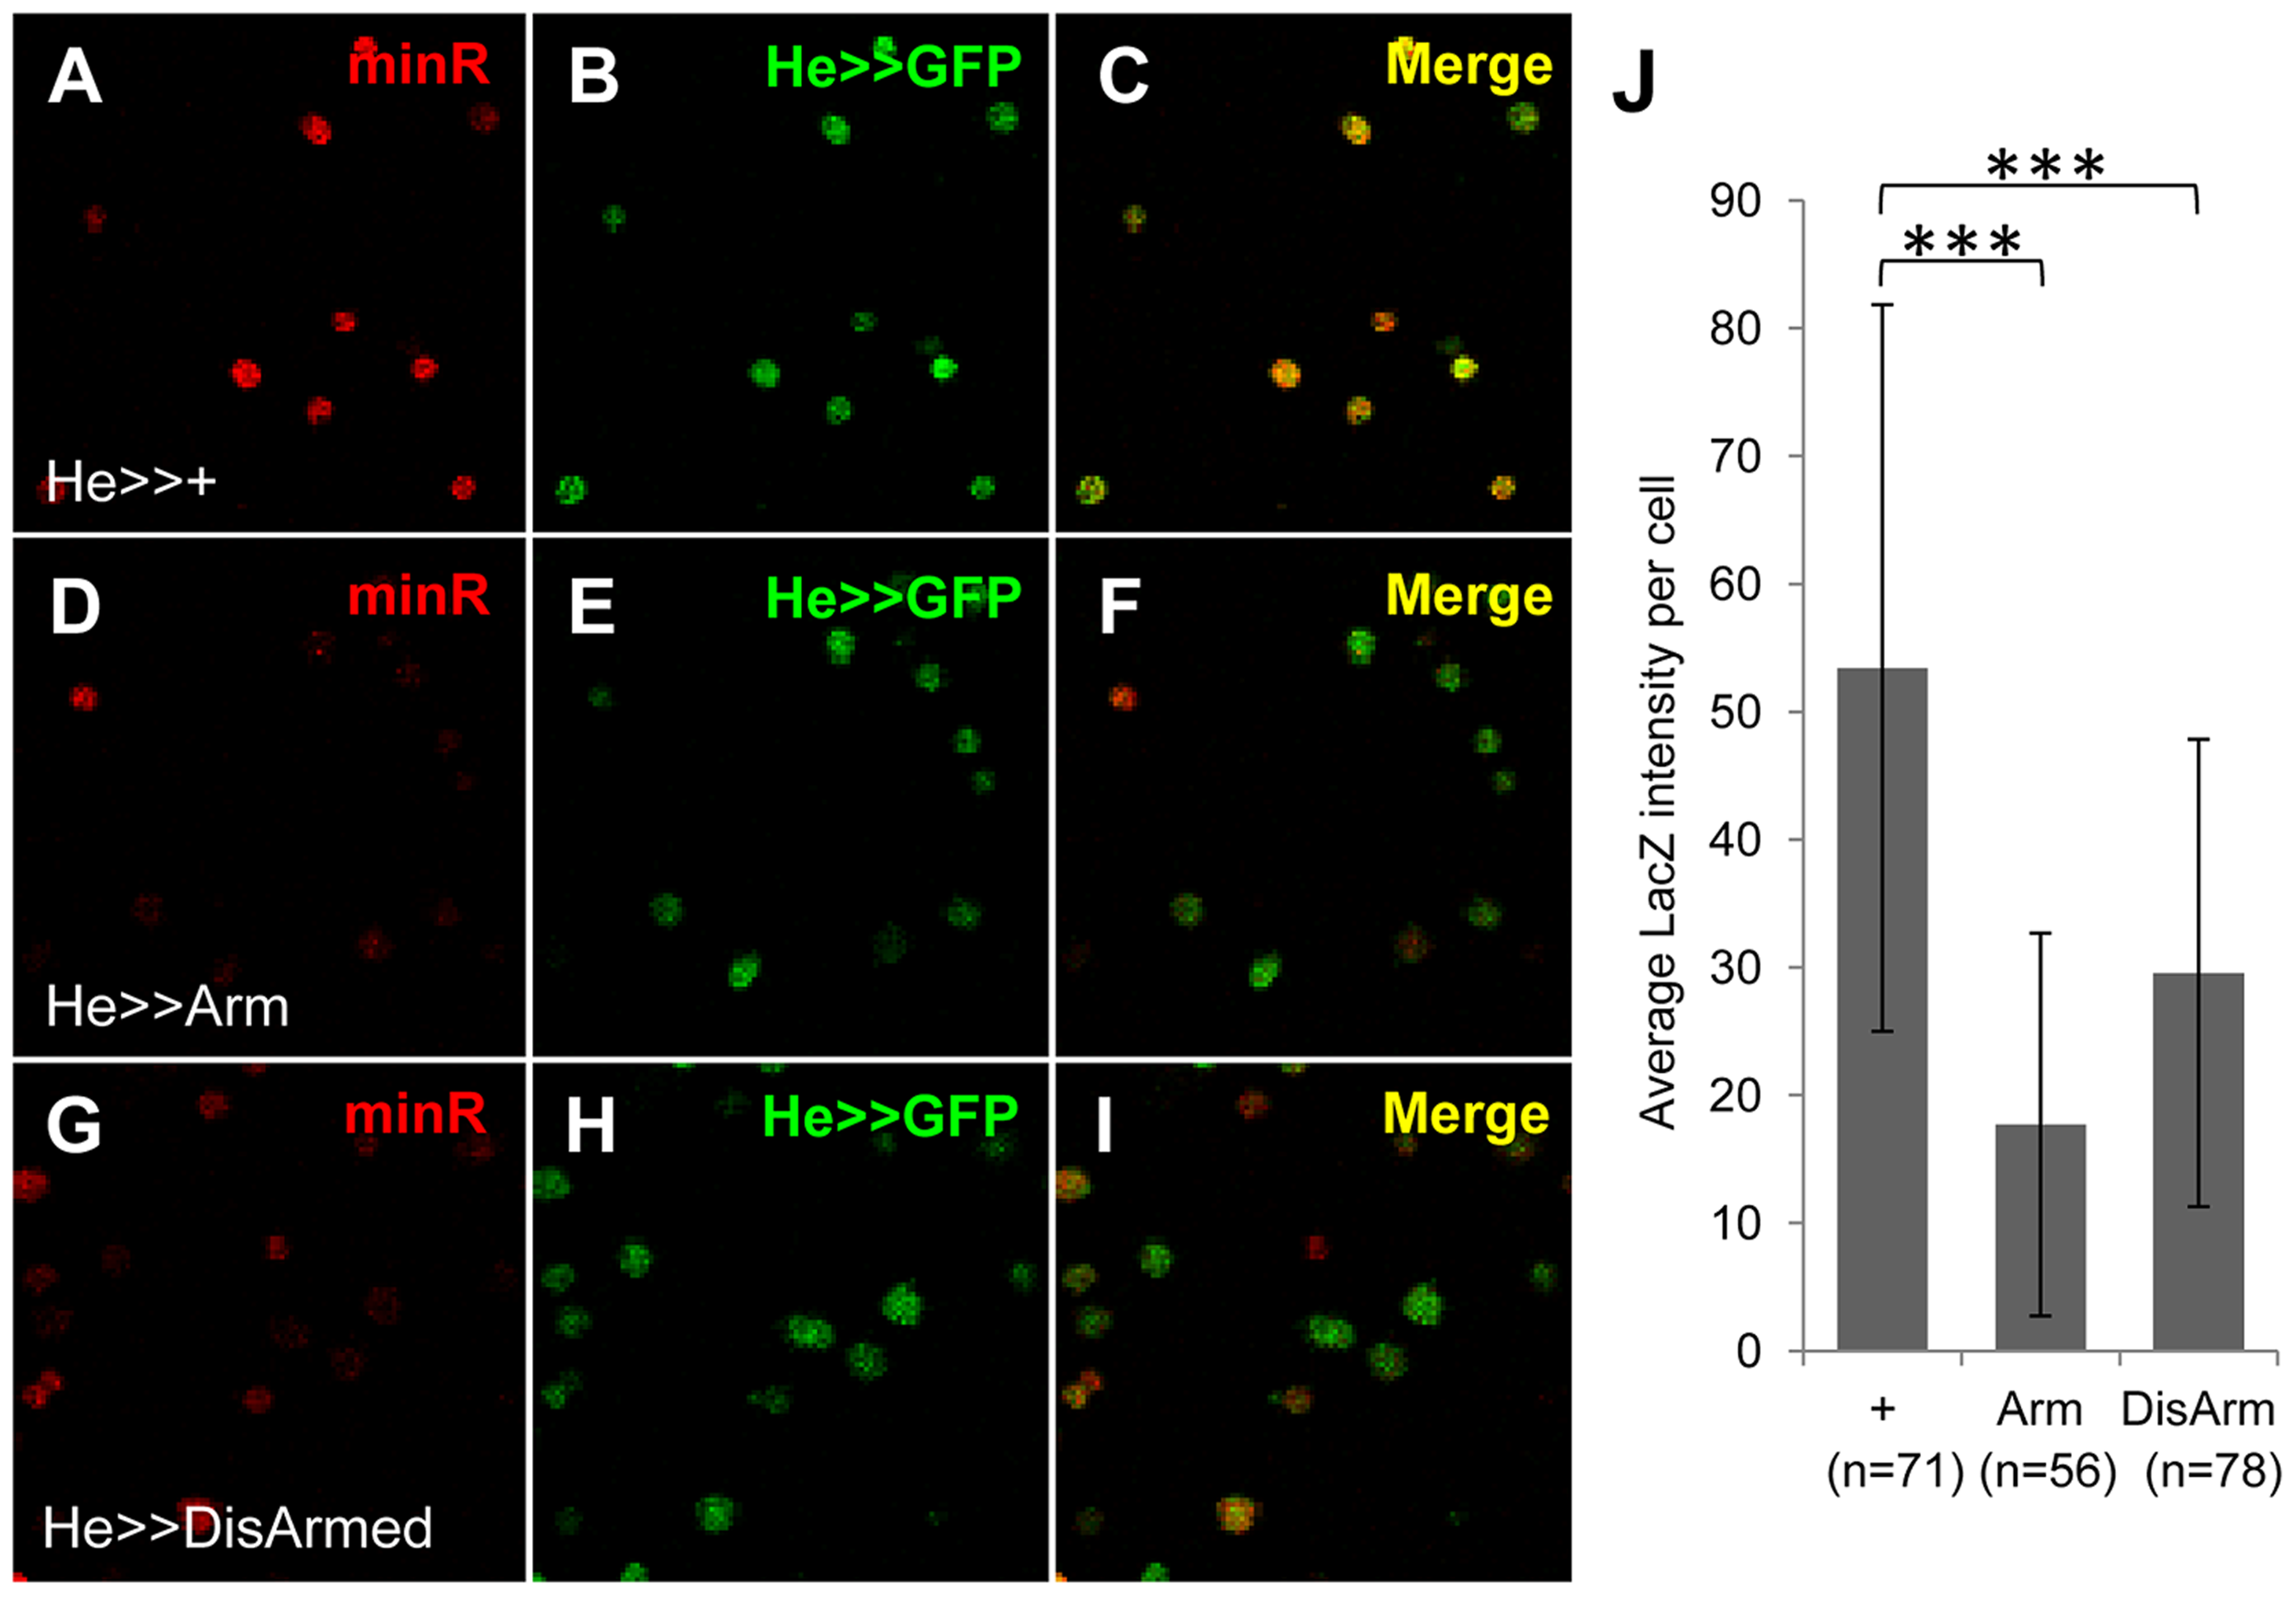 The minR reporter is repressed by Wnt signaling in circulating larval hemocytes.